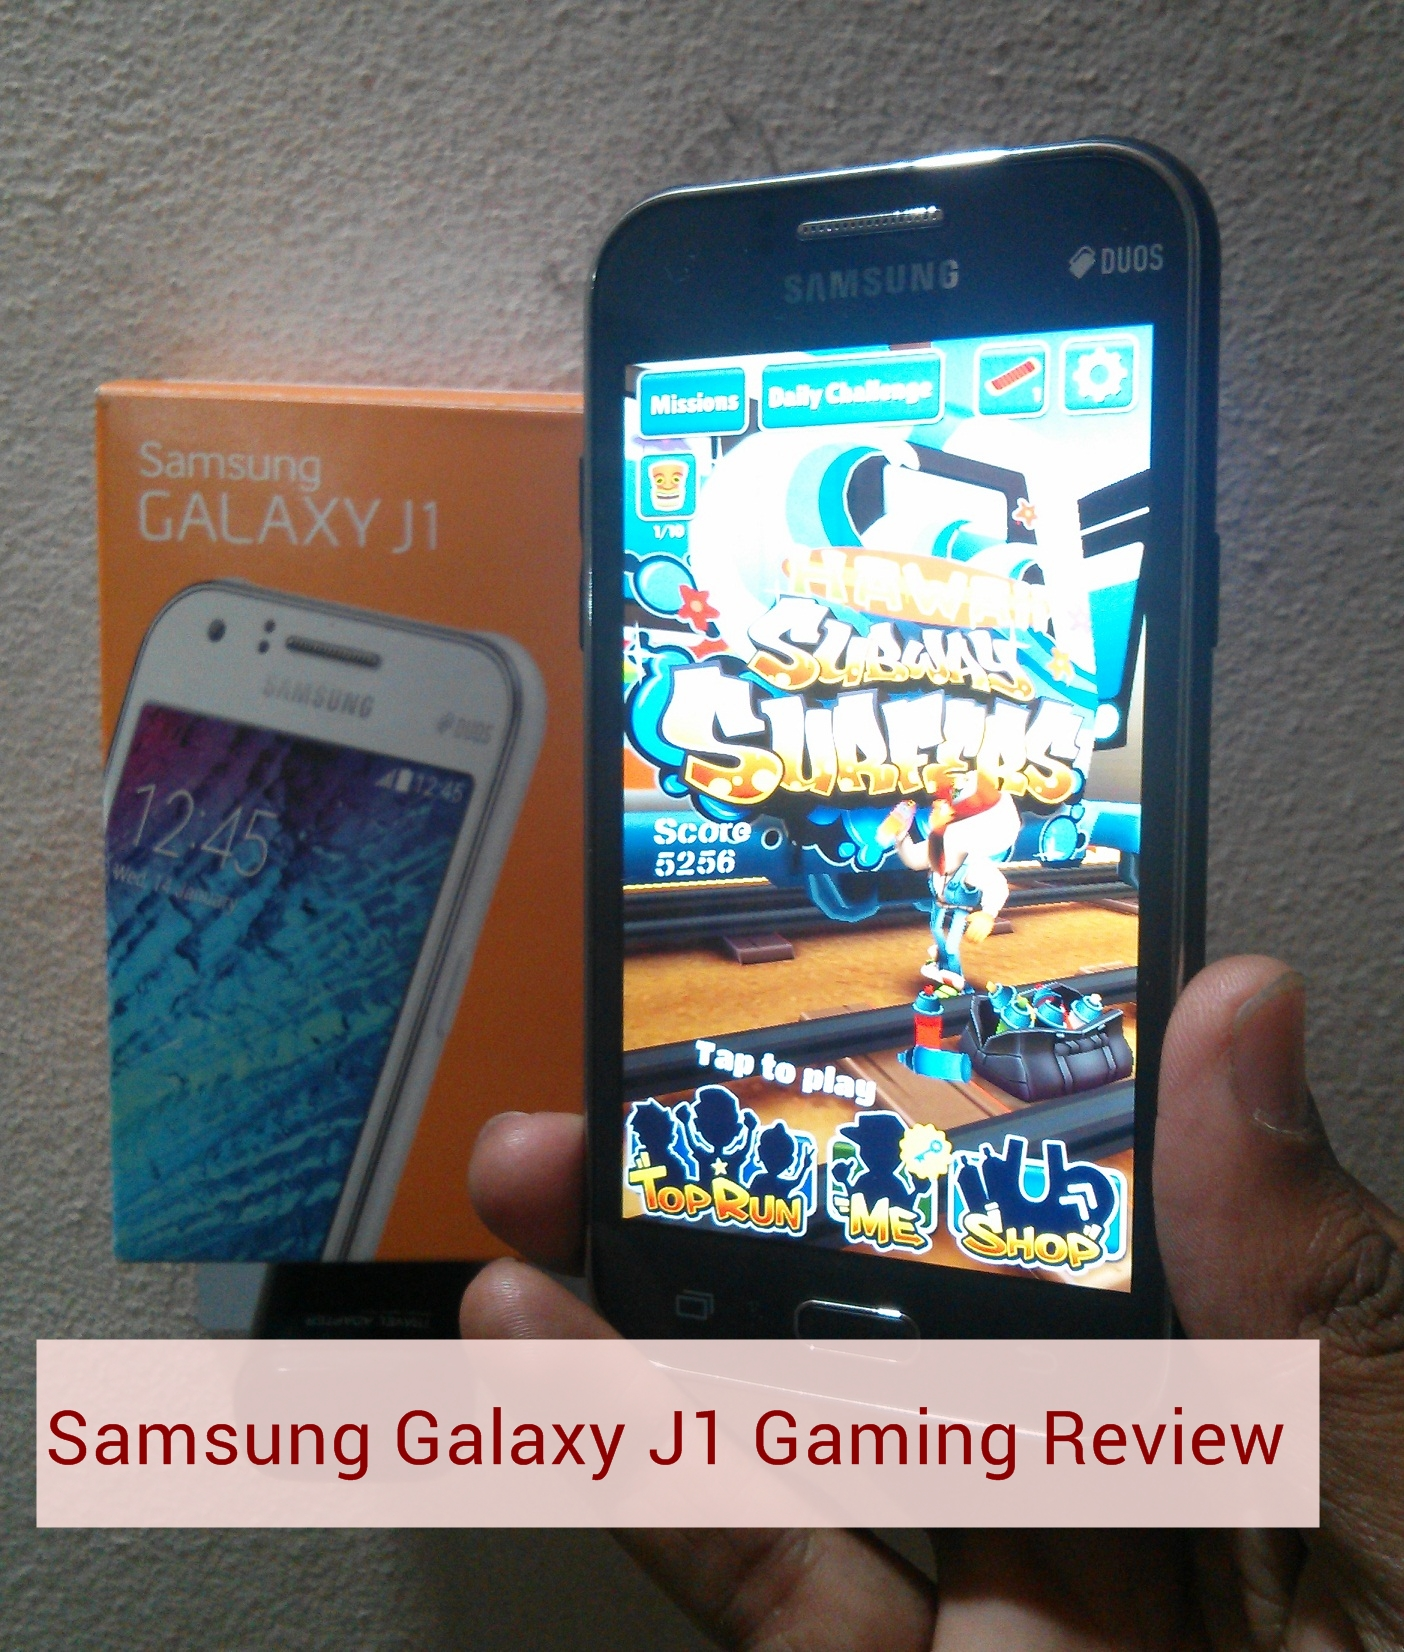 Galaxy J1 Gaming Review